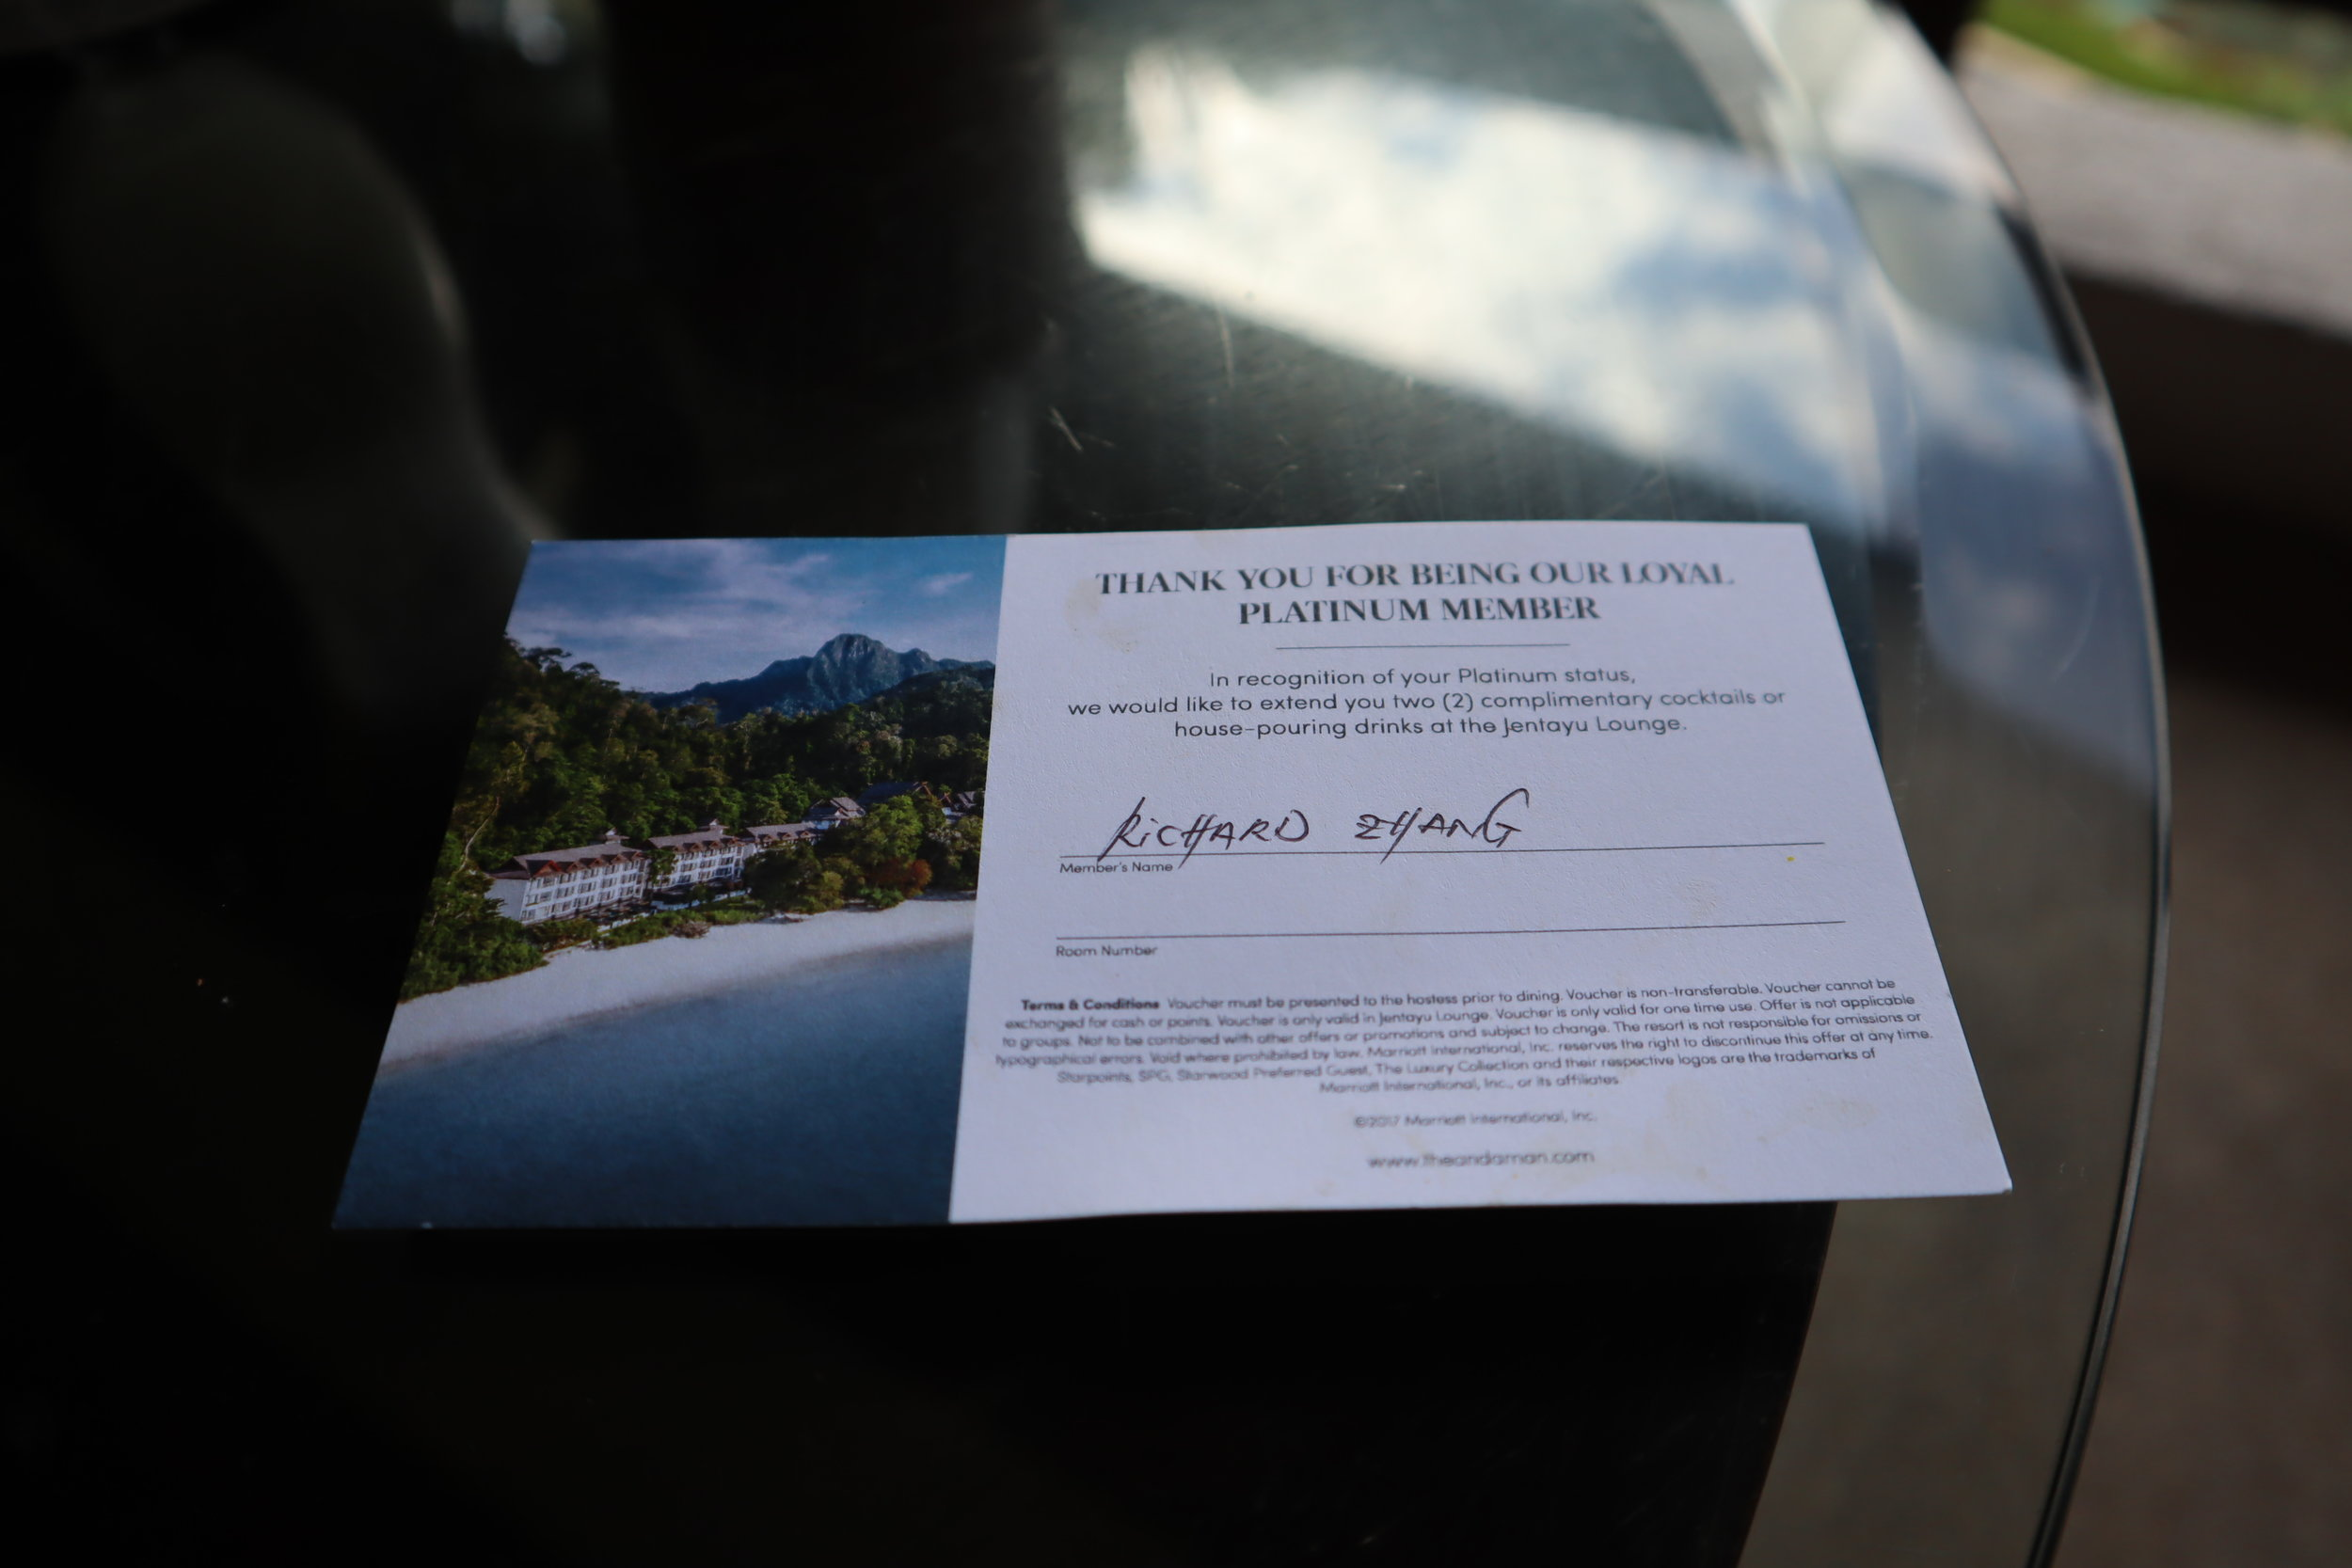 The Andaman Langkawi – Platinum complimentary drinks